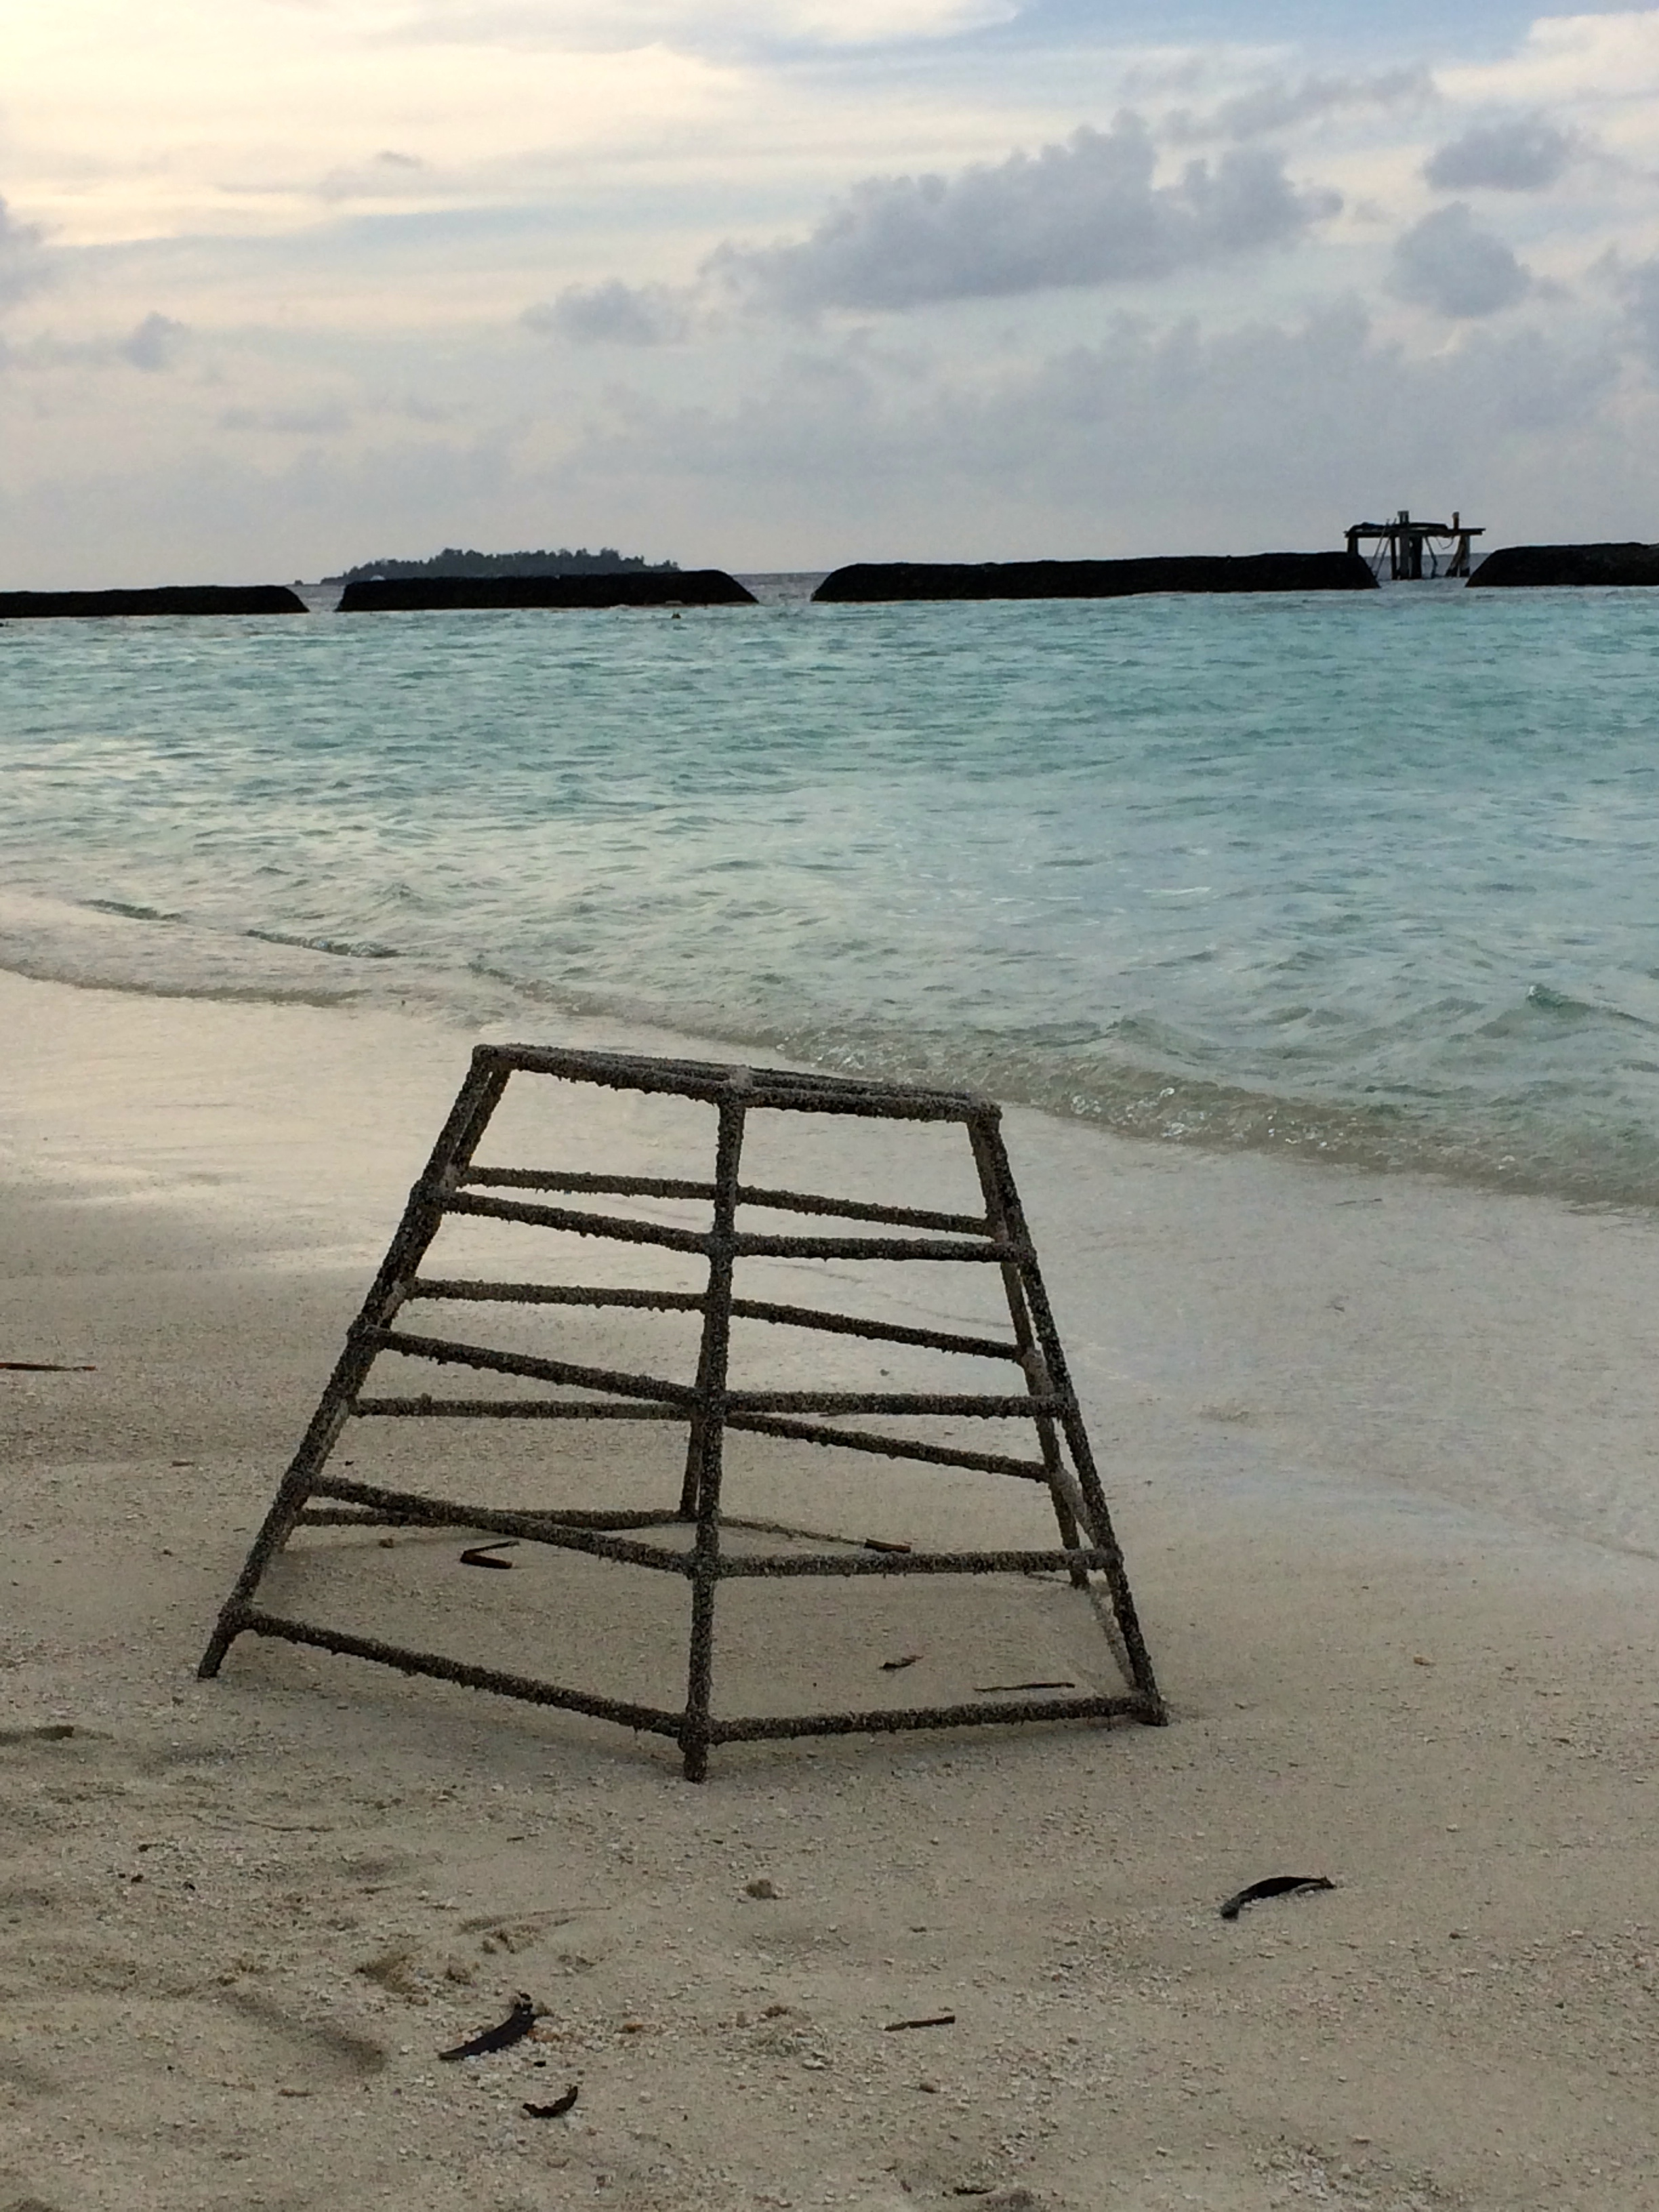 Frame used to create an artificial reef